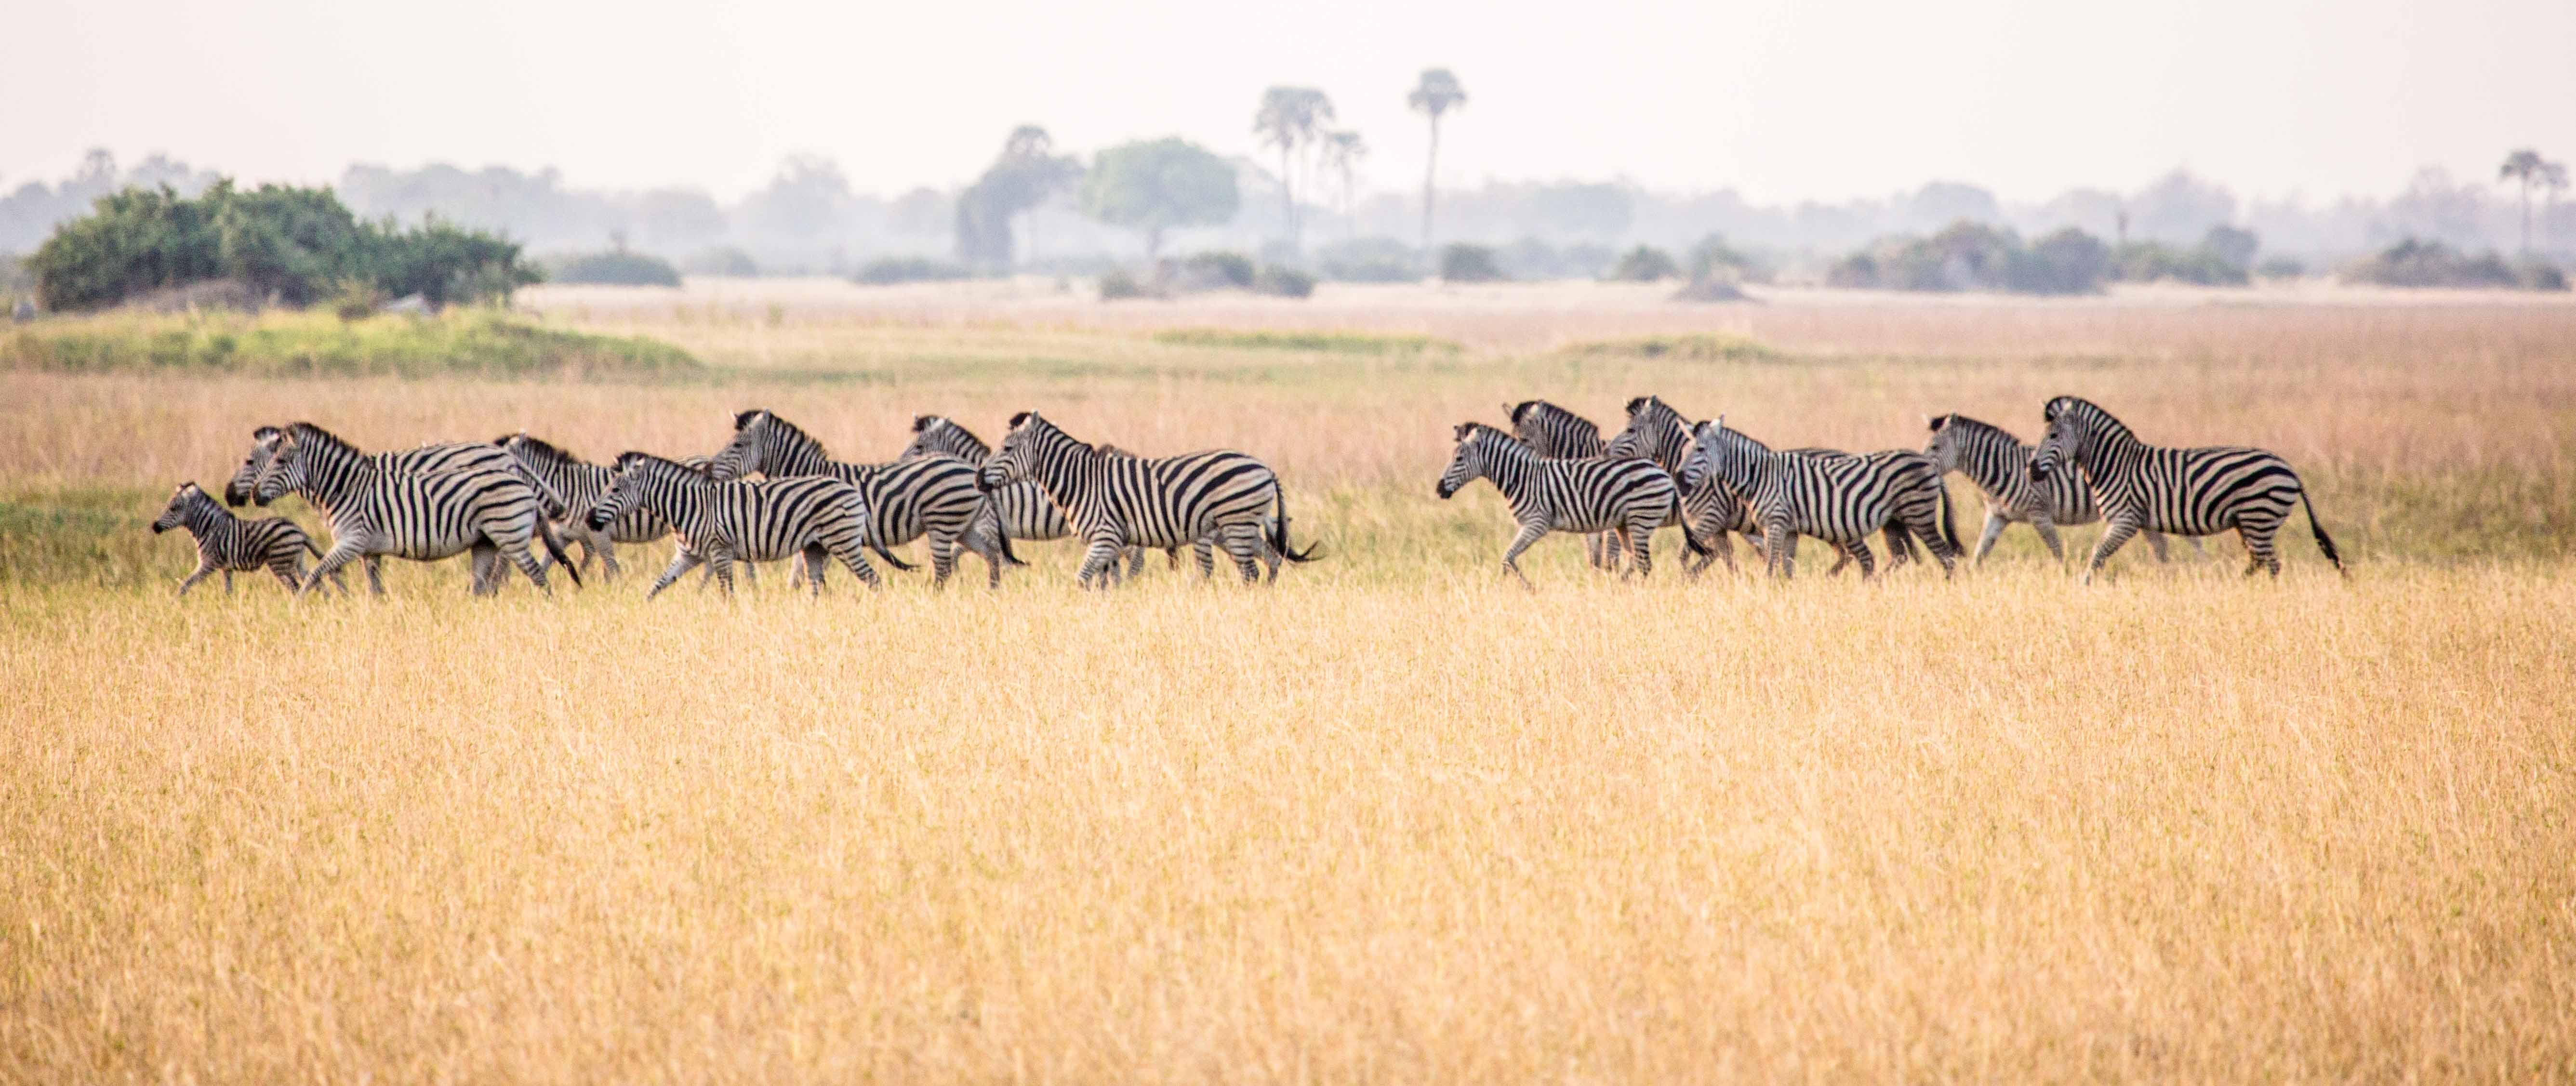 botswana zebras in grasslands